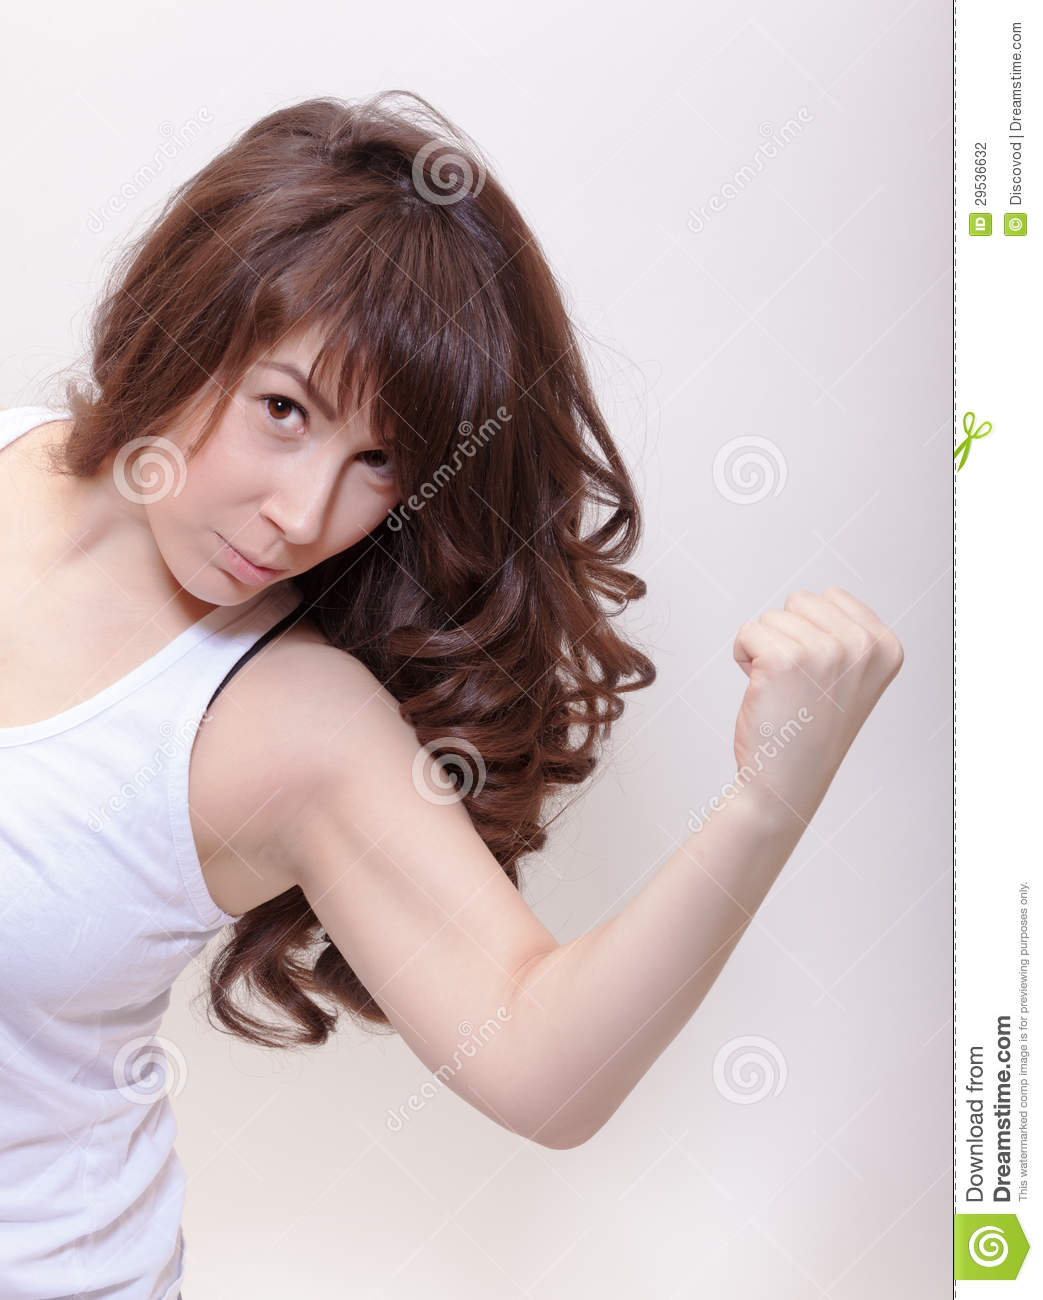 Fist large other that woman woman